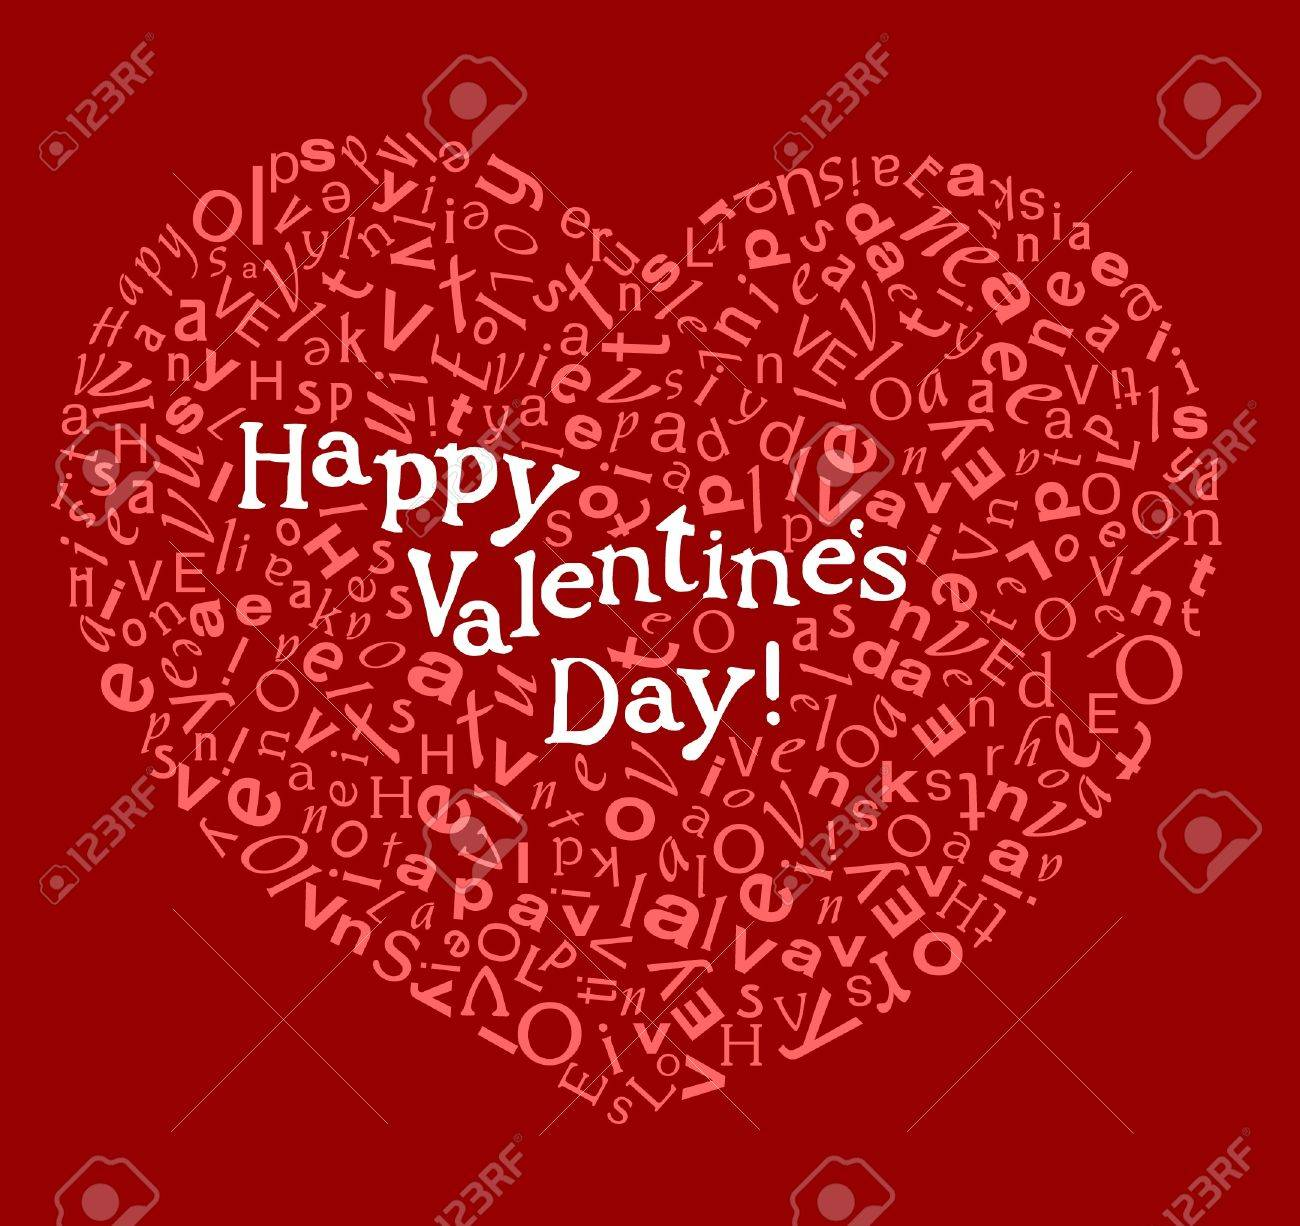 Happy Valentine Card Royalty Free Cliparts Vectors And – Valentine Card Words